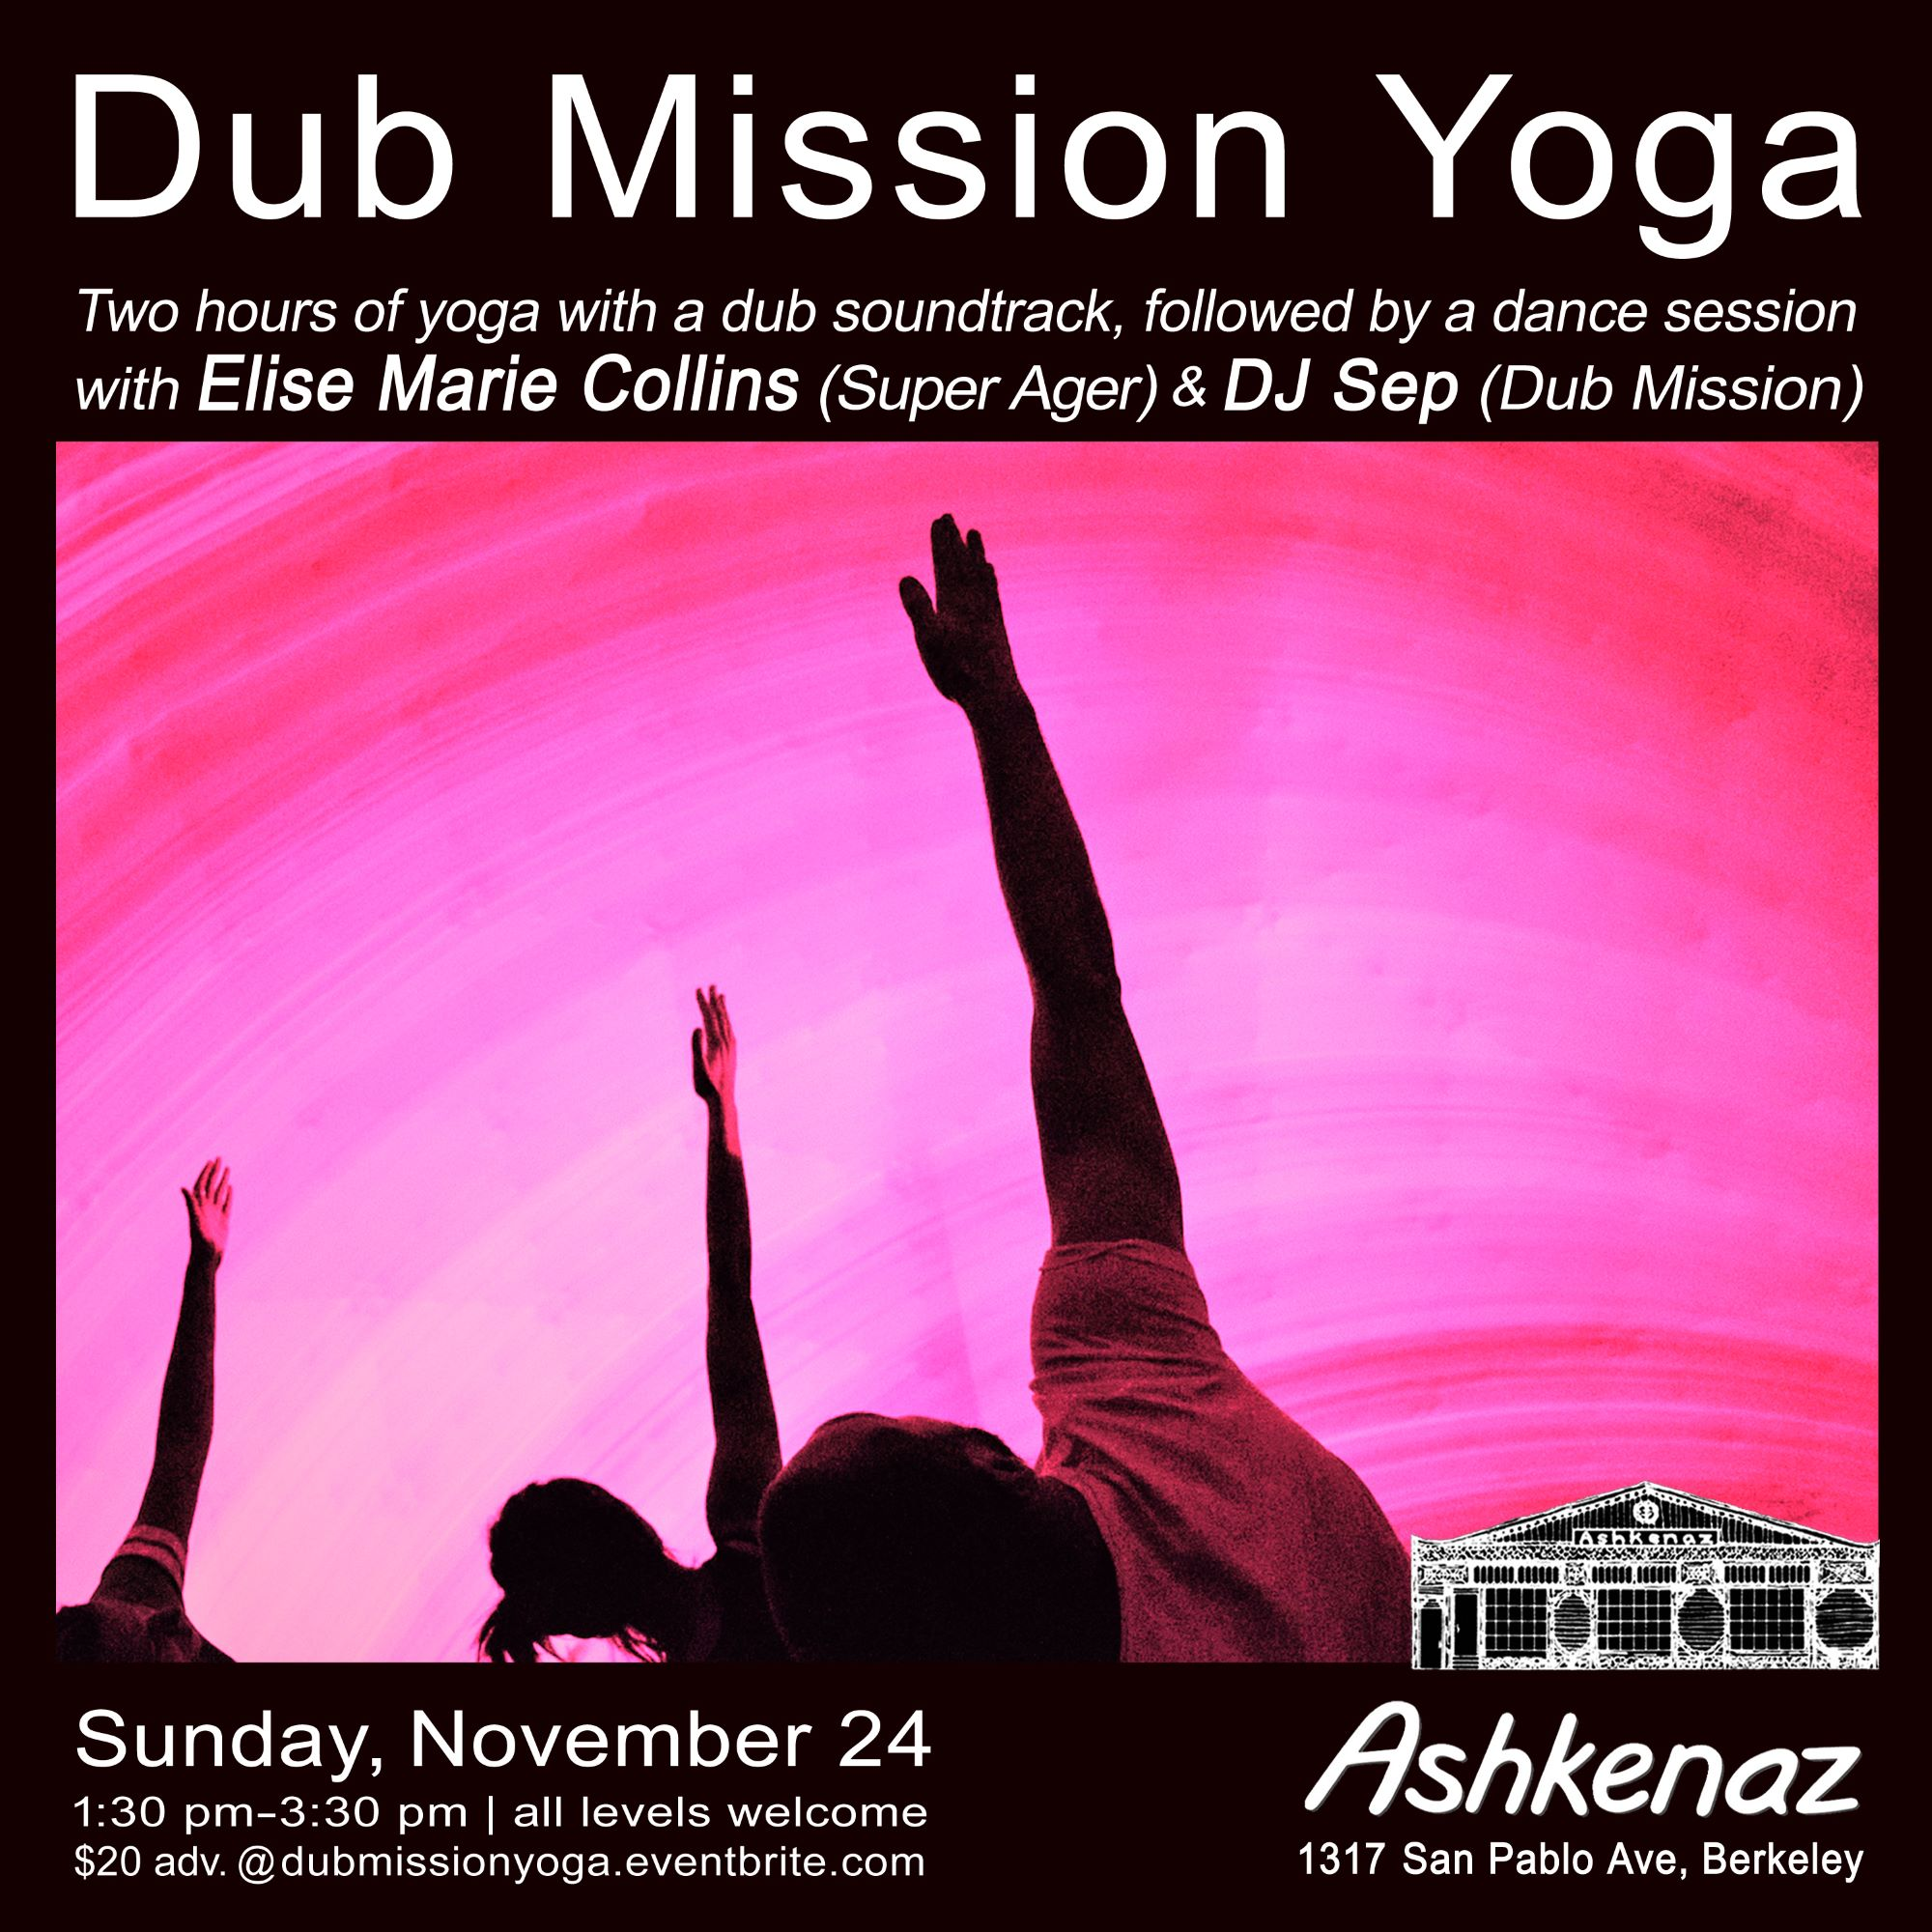 Dub Mission Yoga